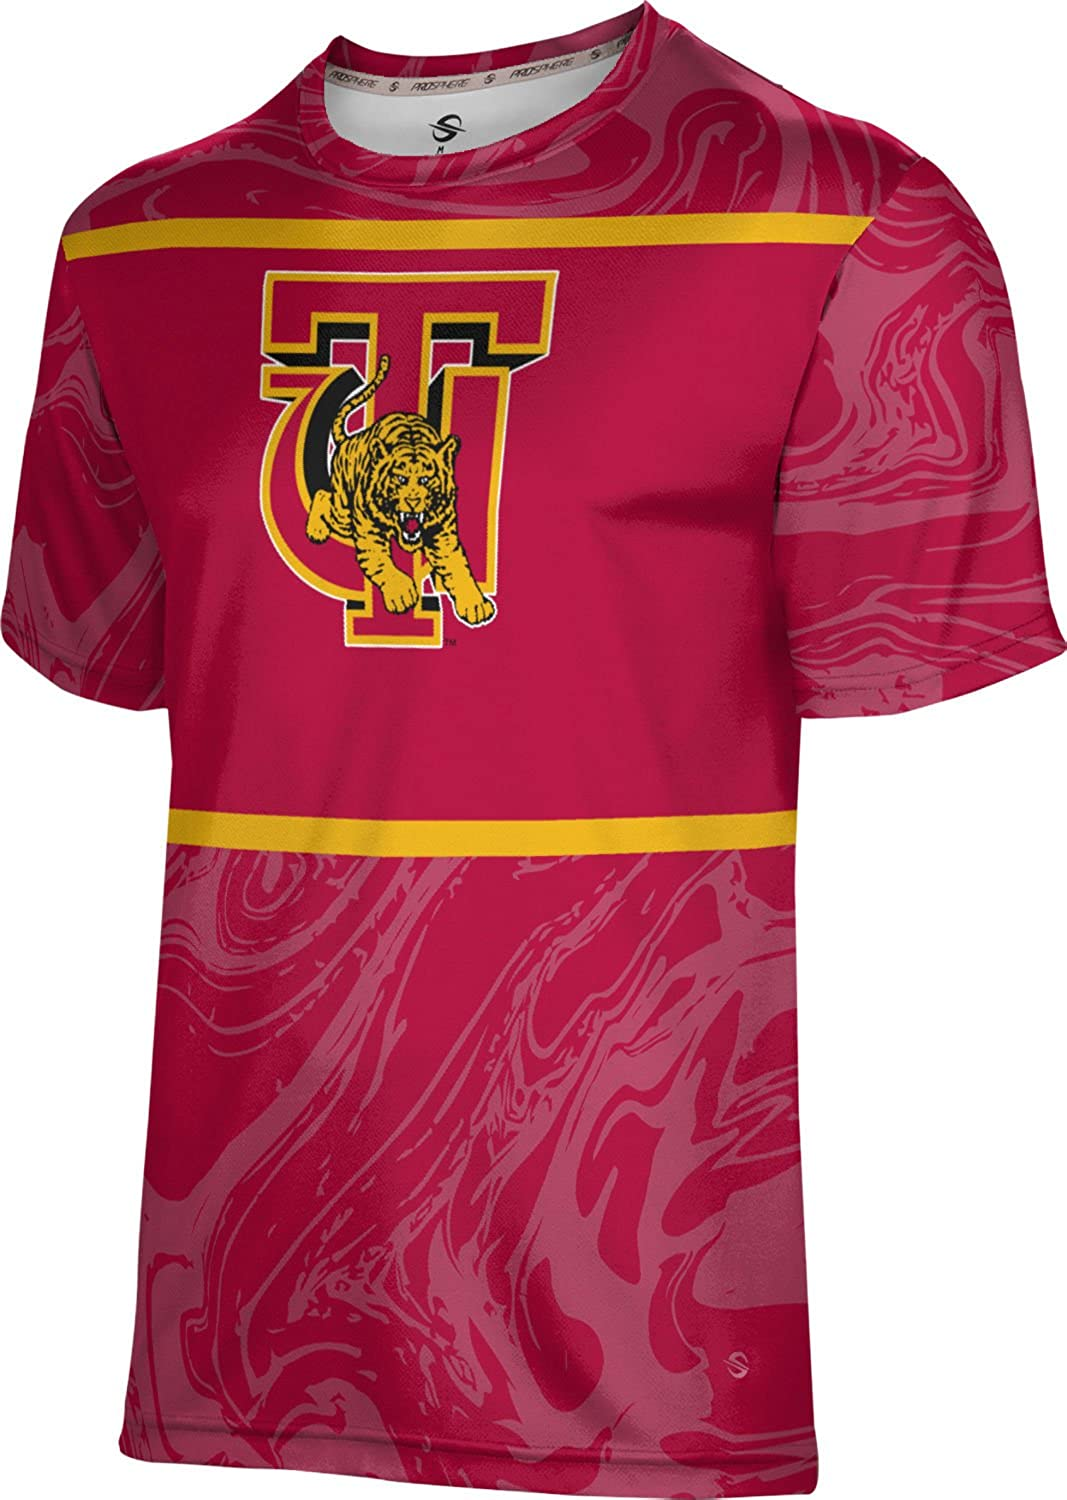 Ripple ProSphere Tuskegee University Boys Performance T-Shirt